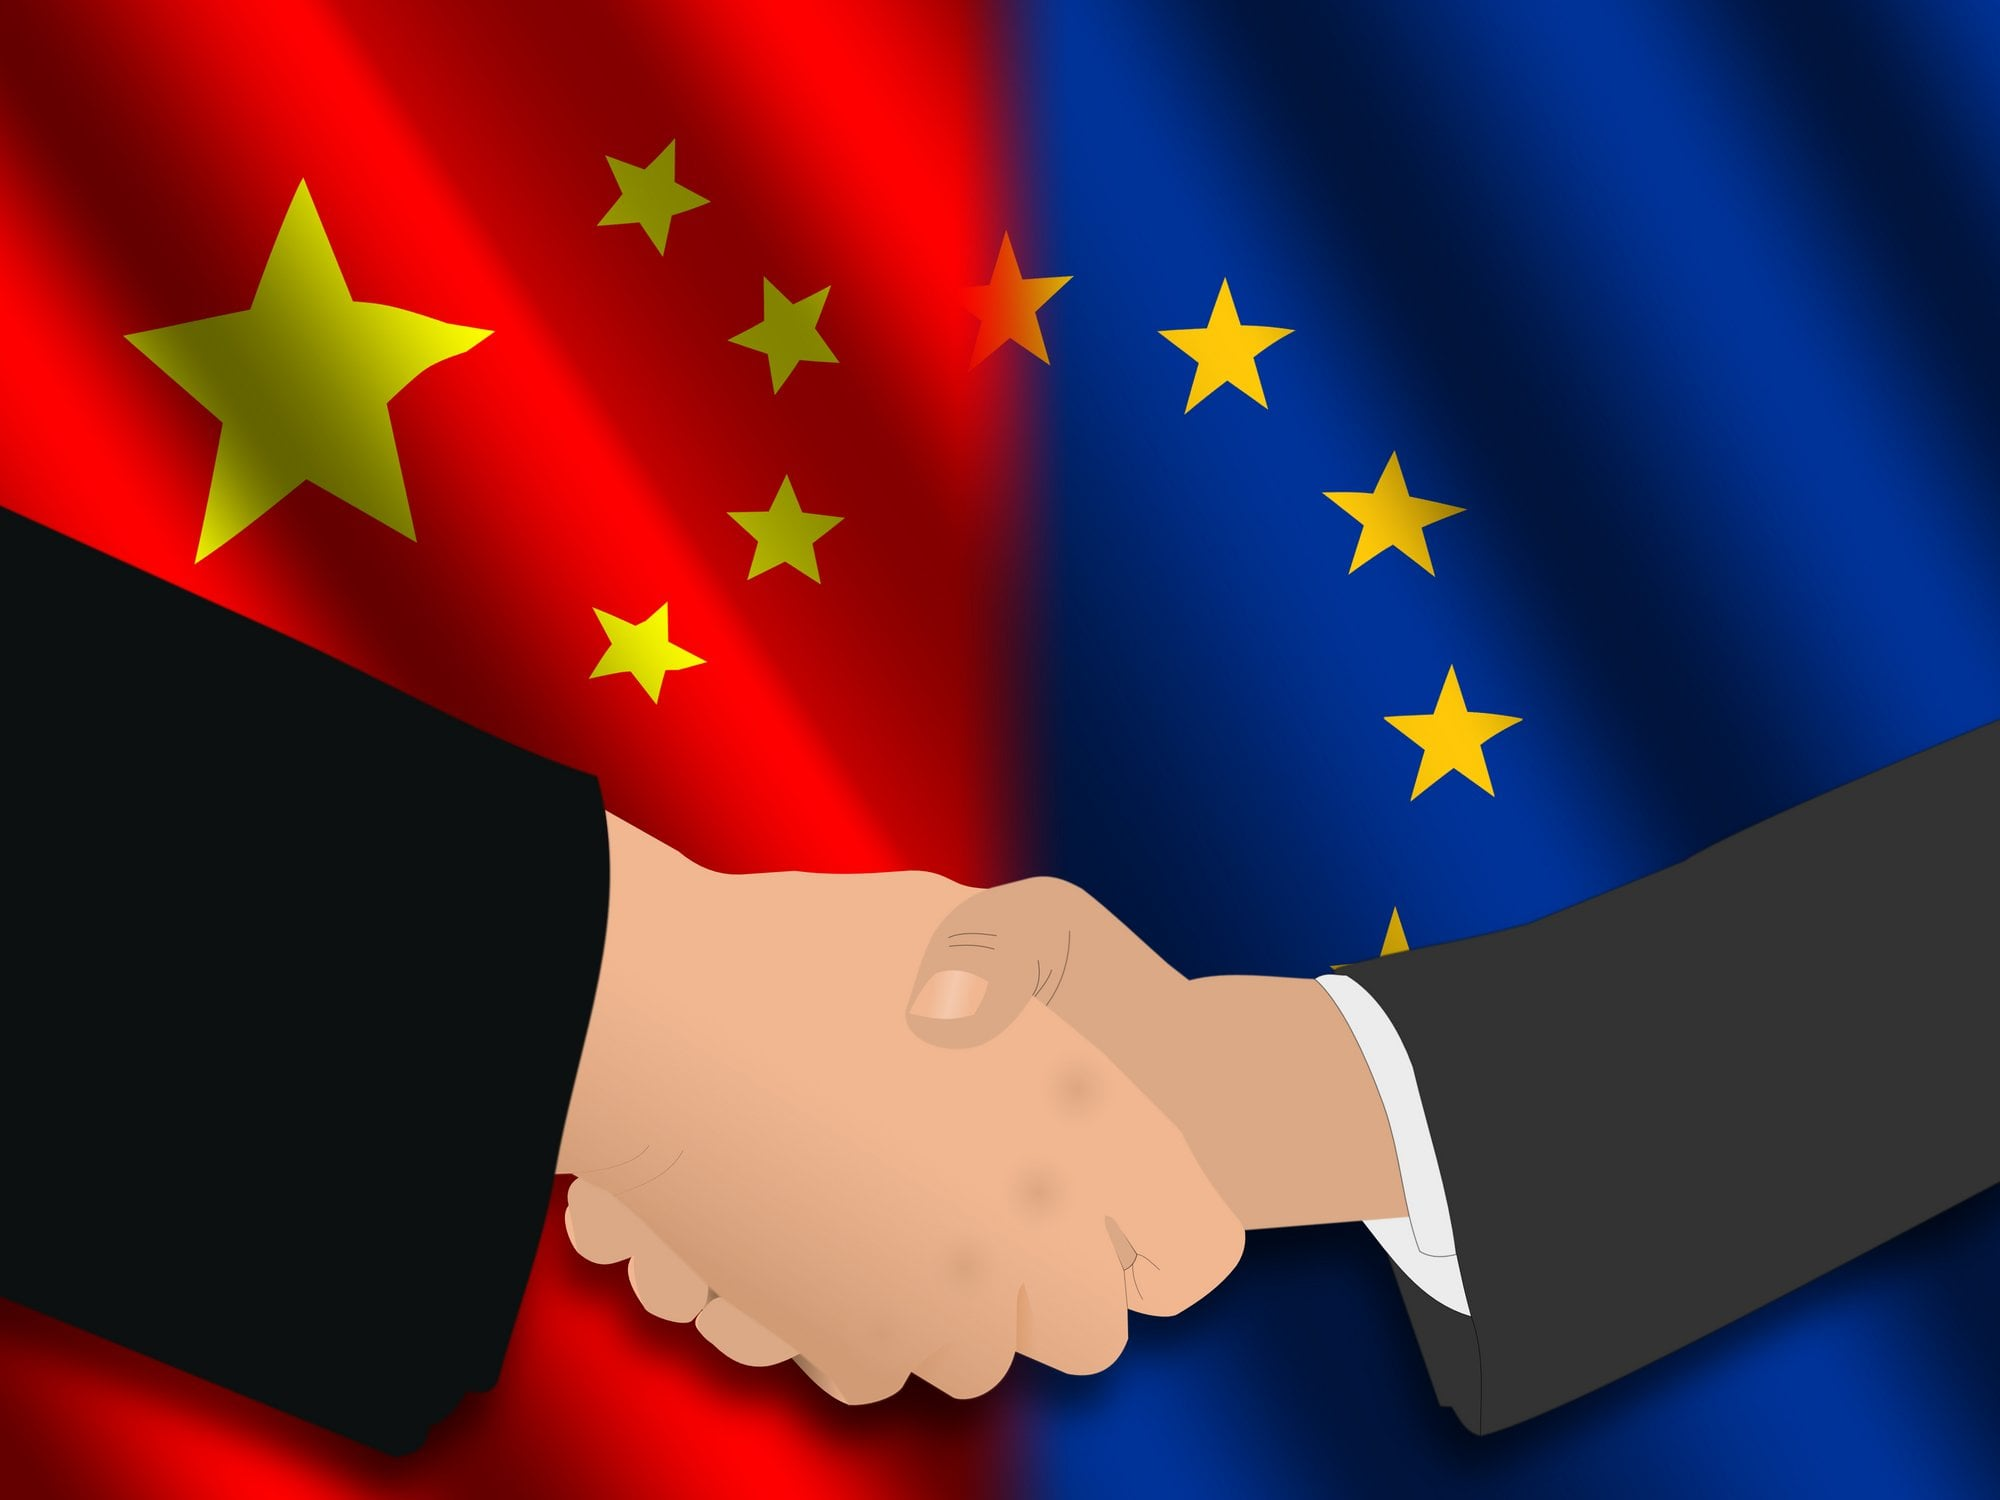 eu china relationship In the past 10 years the european union and china have emerged as new international actors they have an increasingly diverse relationship covering economy, politics, technology, culture and education but beyond these two-way linkages the eu-china development is also changing the international political environment.